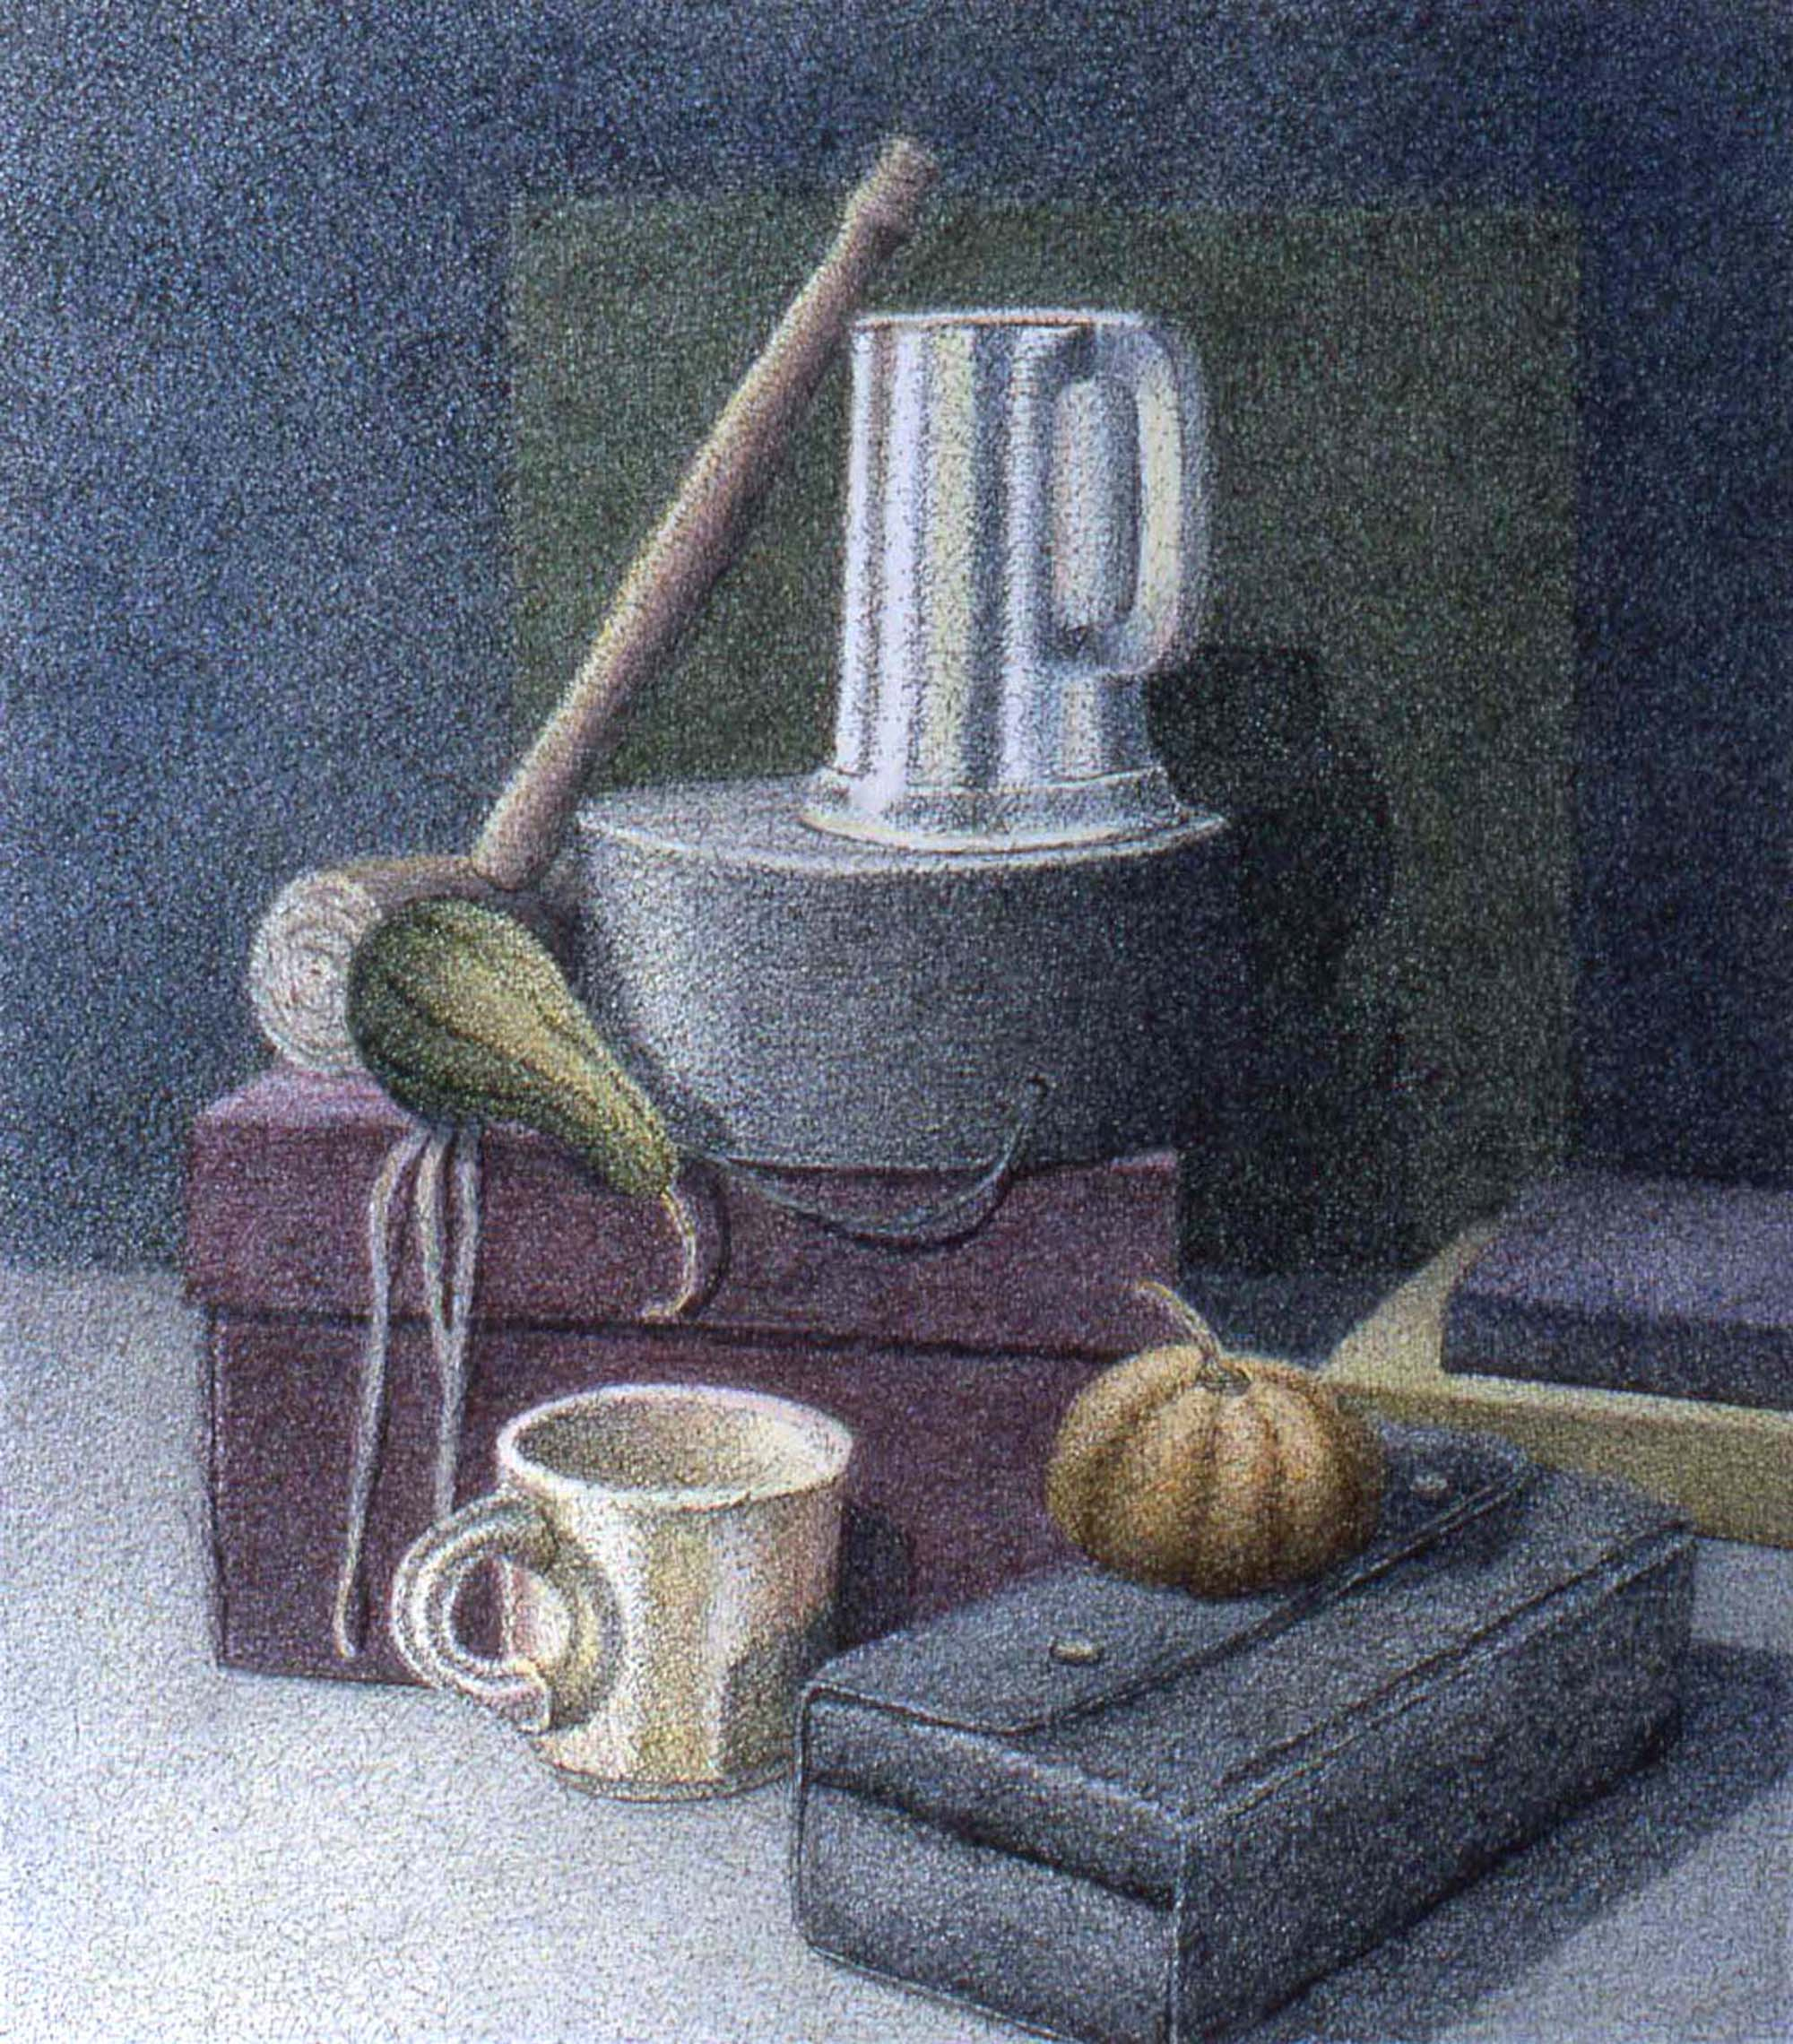 William F. Brown painting of household objects